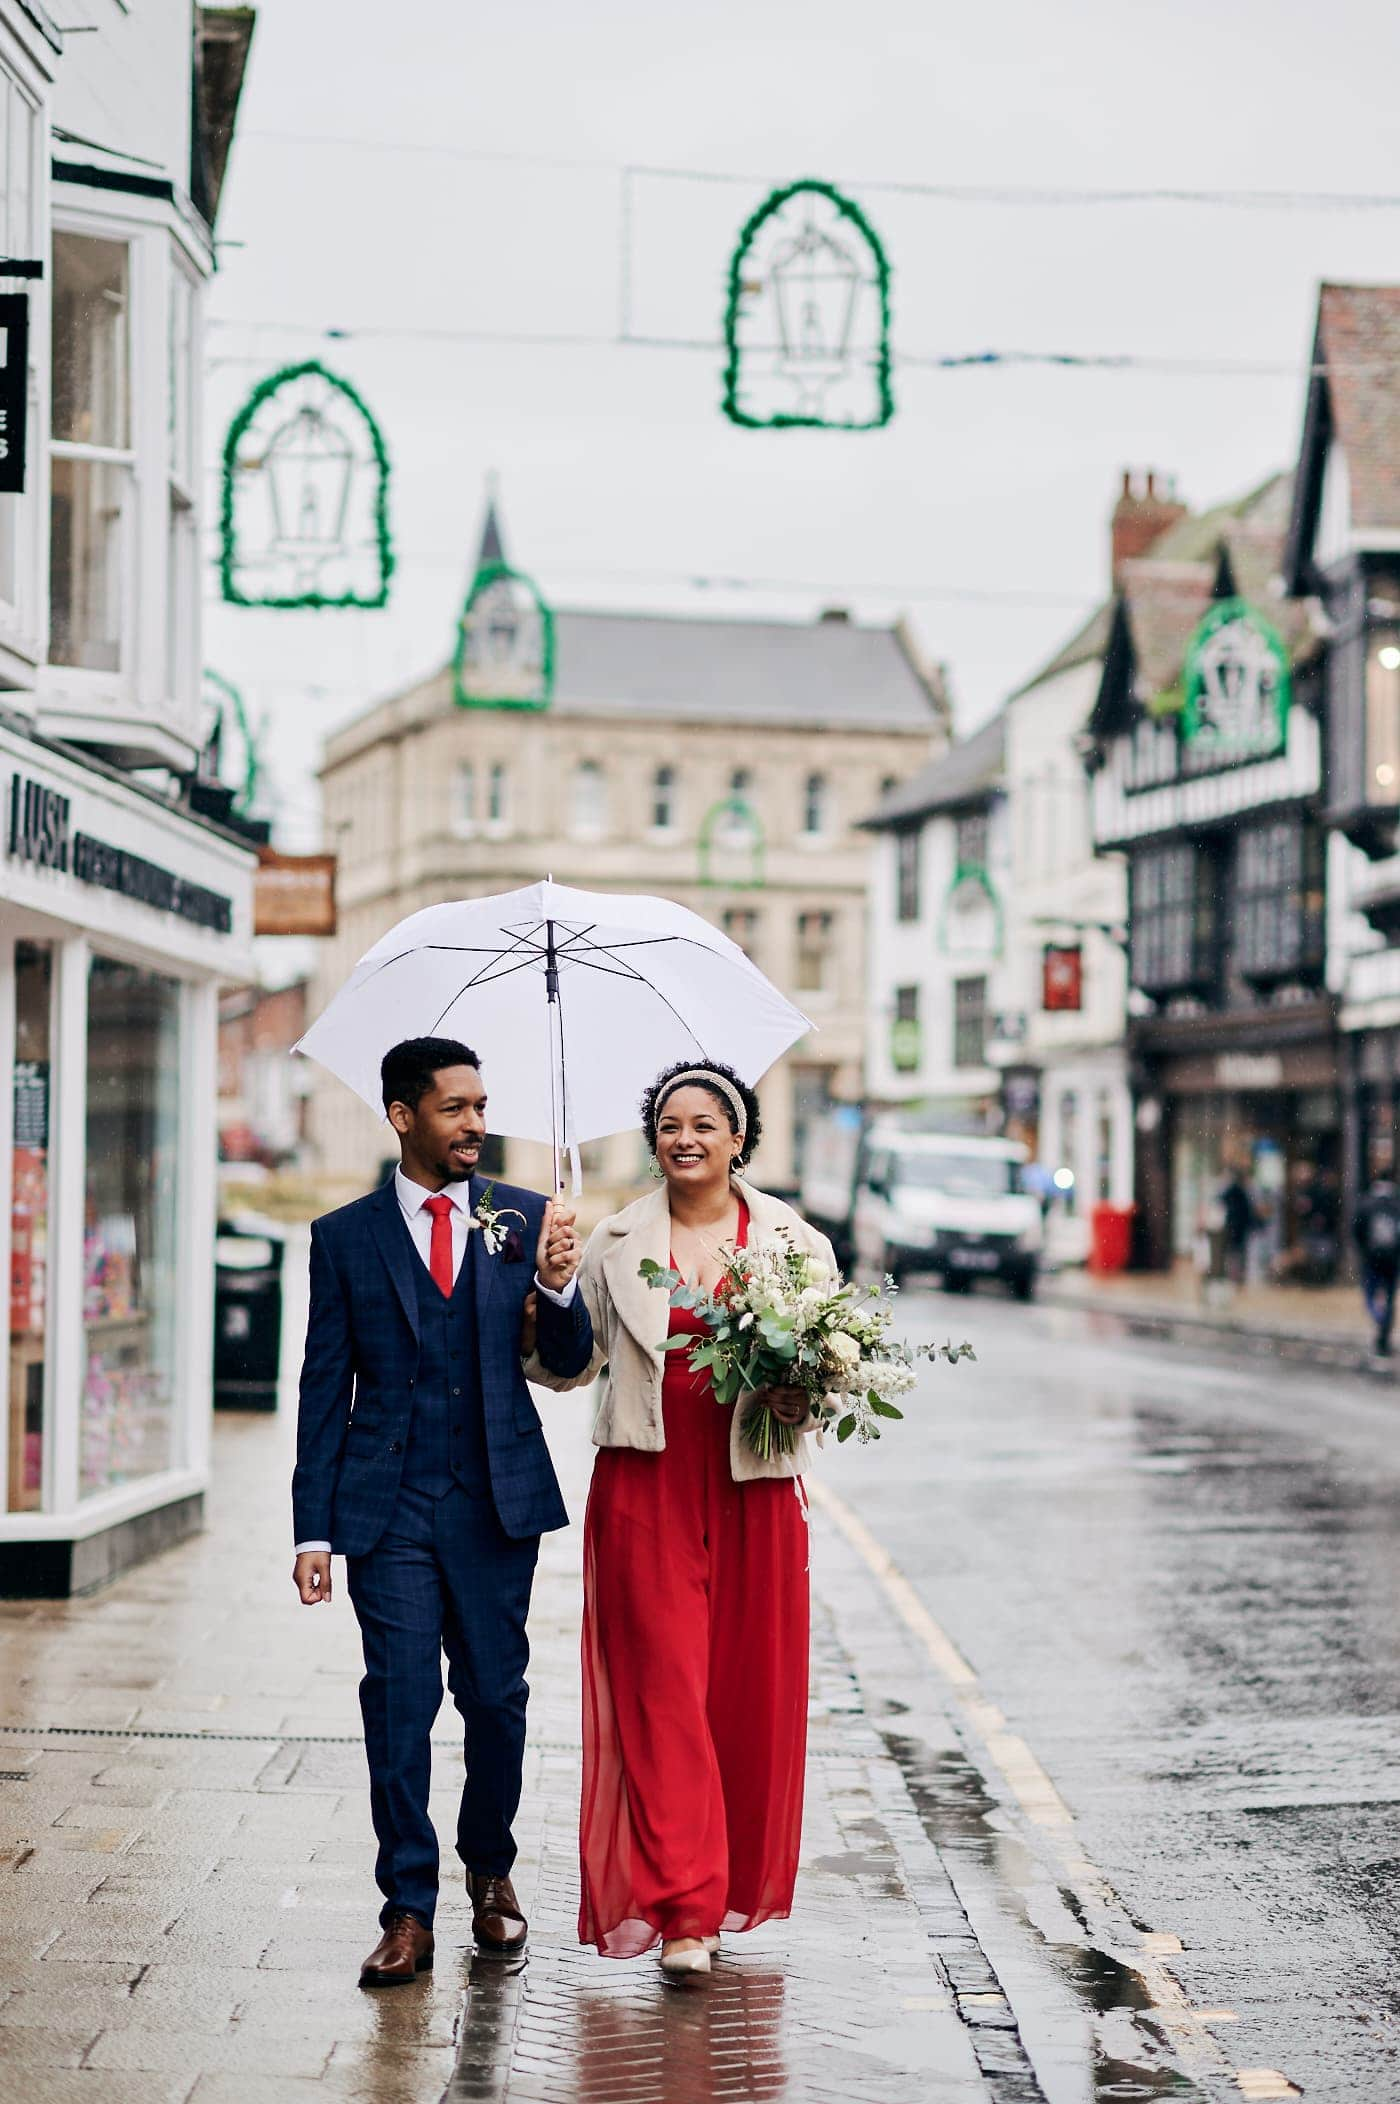 Happy couple walk in Stratford-upon-Avon after small wedding ceremony